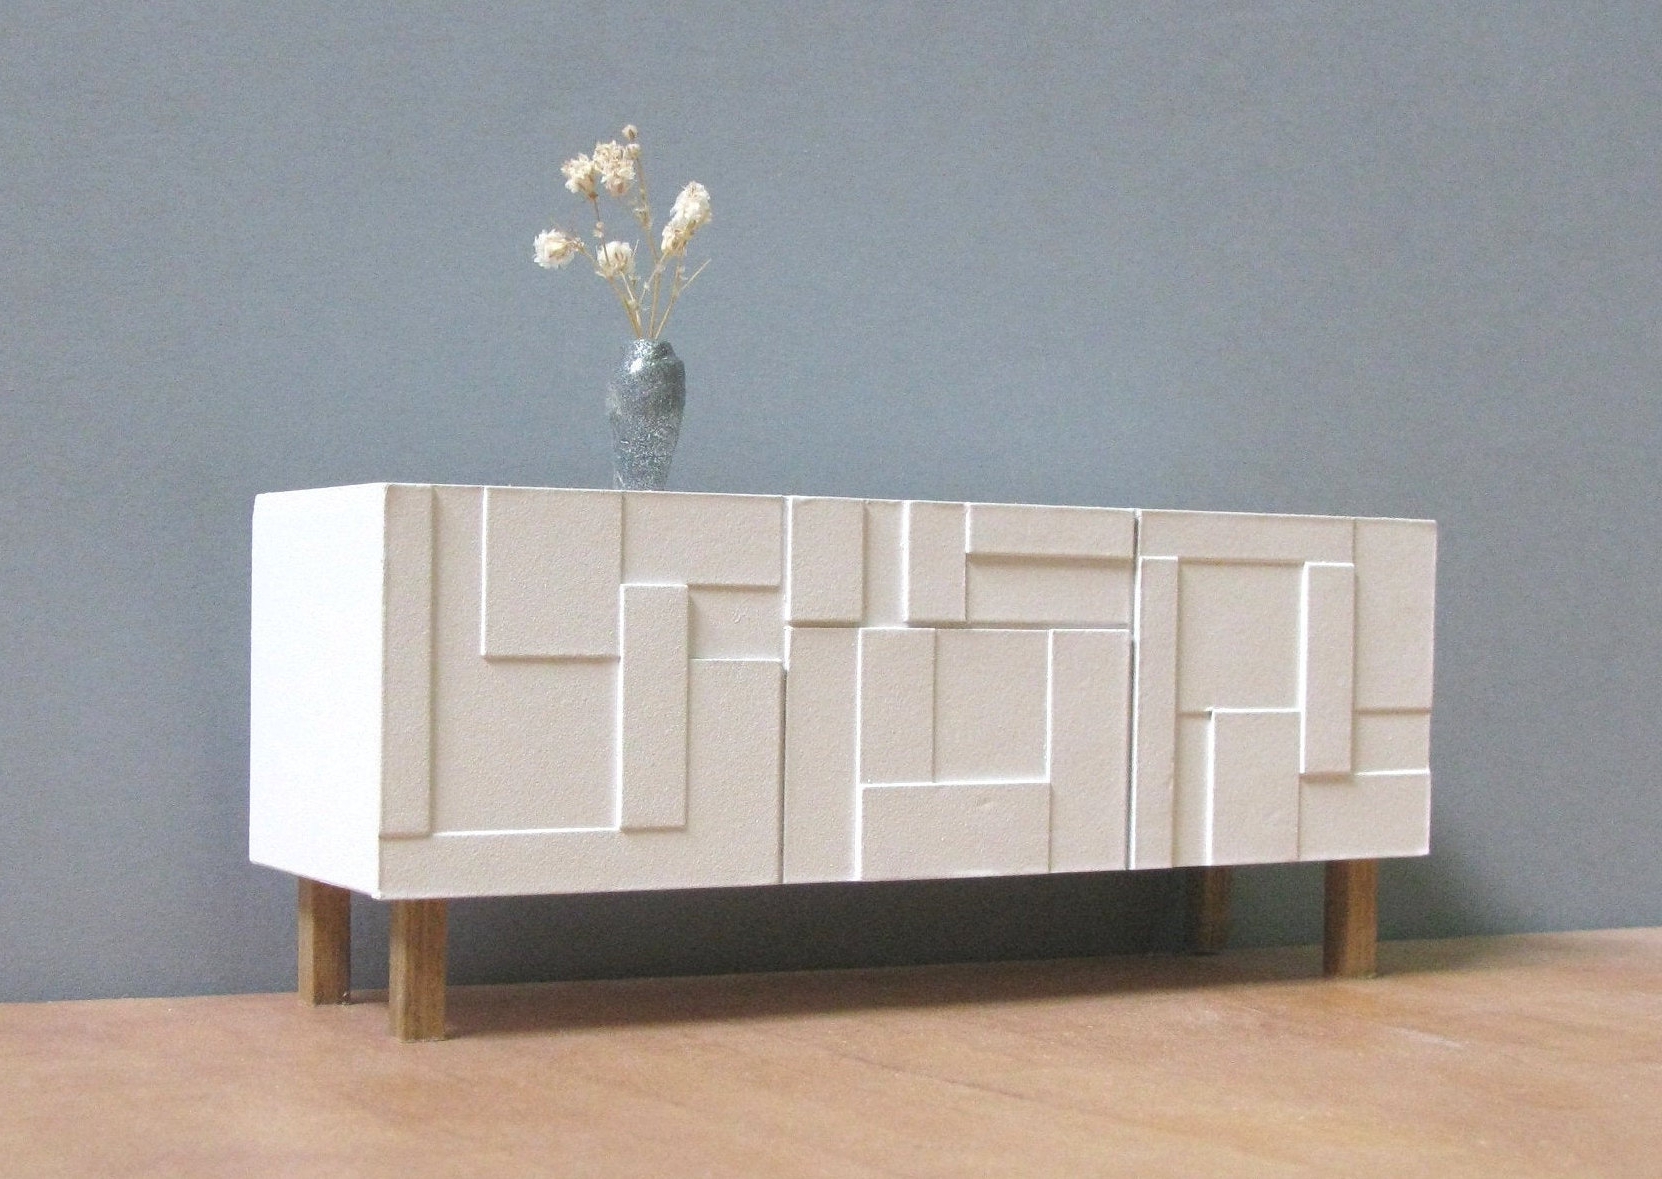 Dollhouse White Sideboard / Credenza, 1/18 1/12 Scale, Handmade Collectable  Miniature Furniture, Modern Style Decor, Contemporary Design Throughout Floral Beauty Credenzas (View 7 of 20)